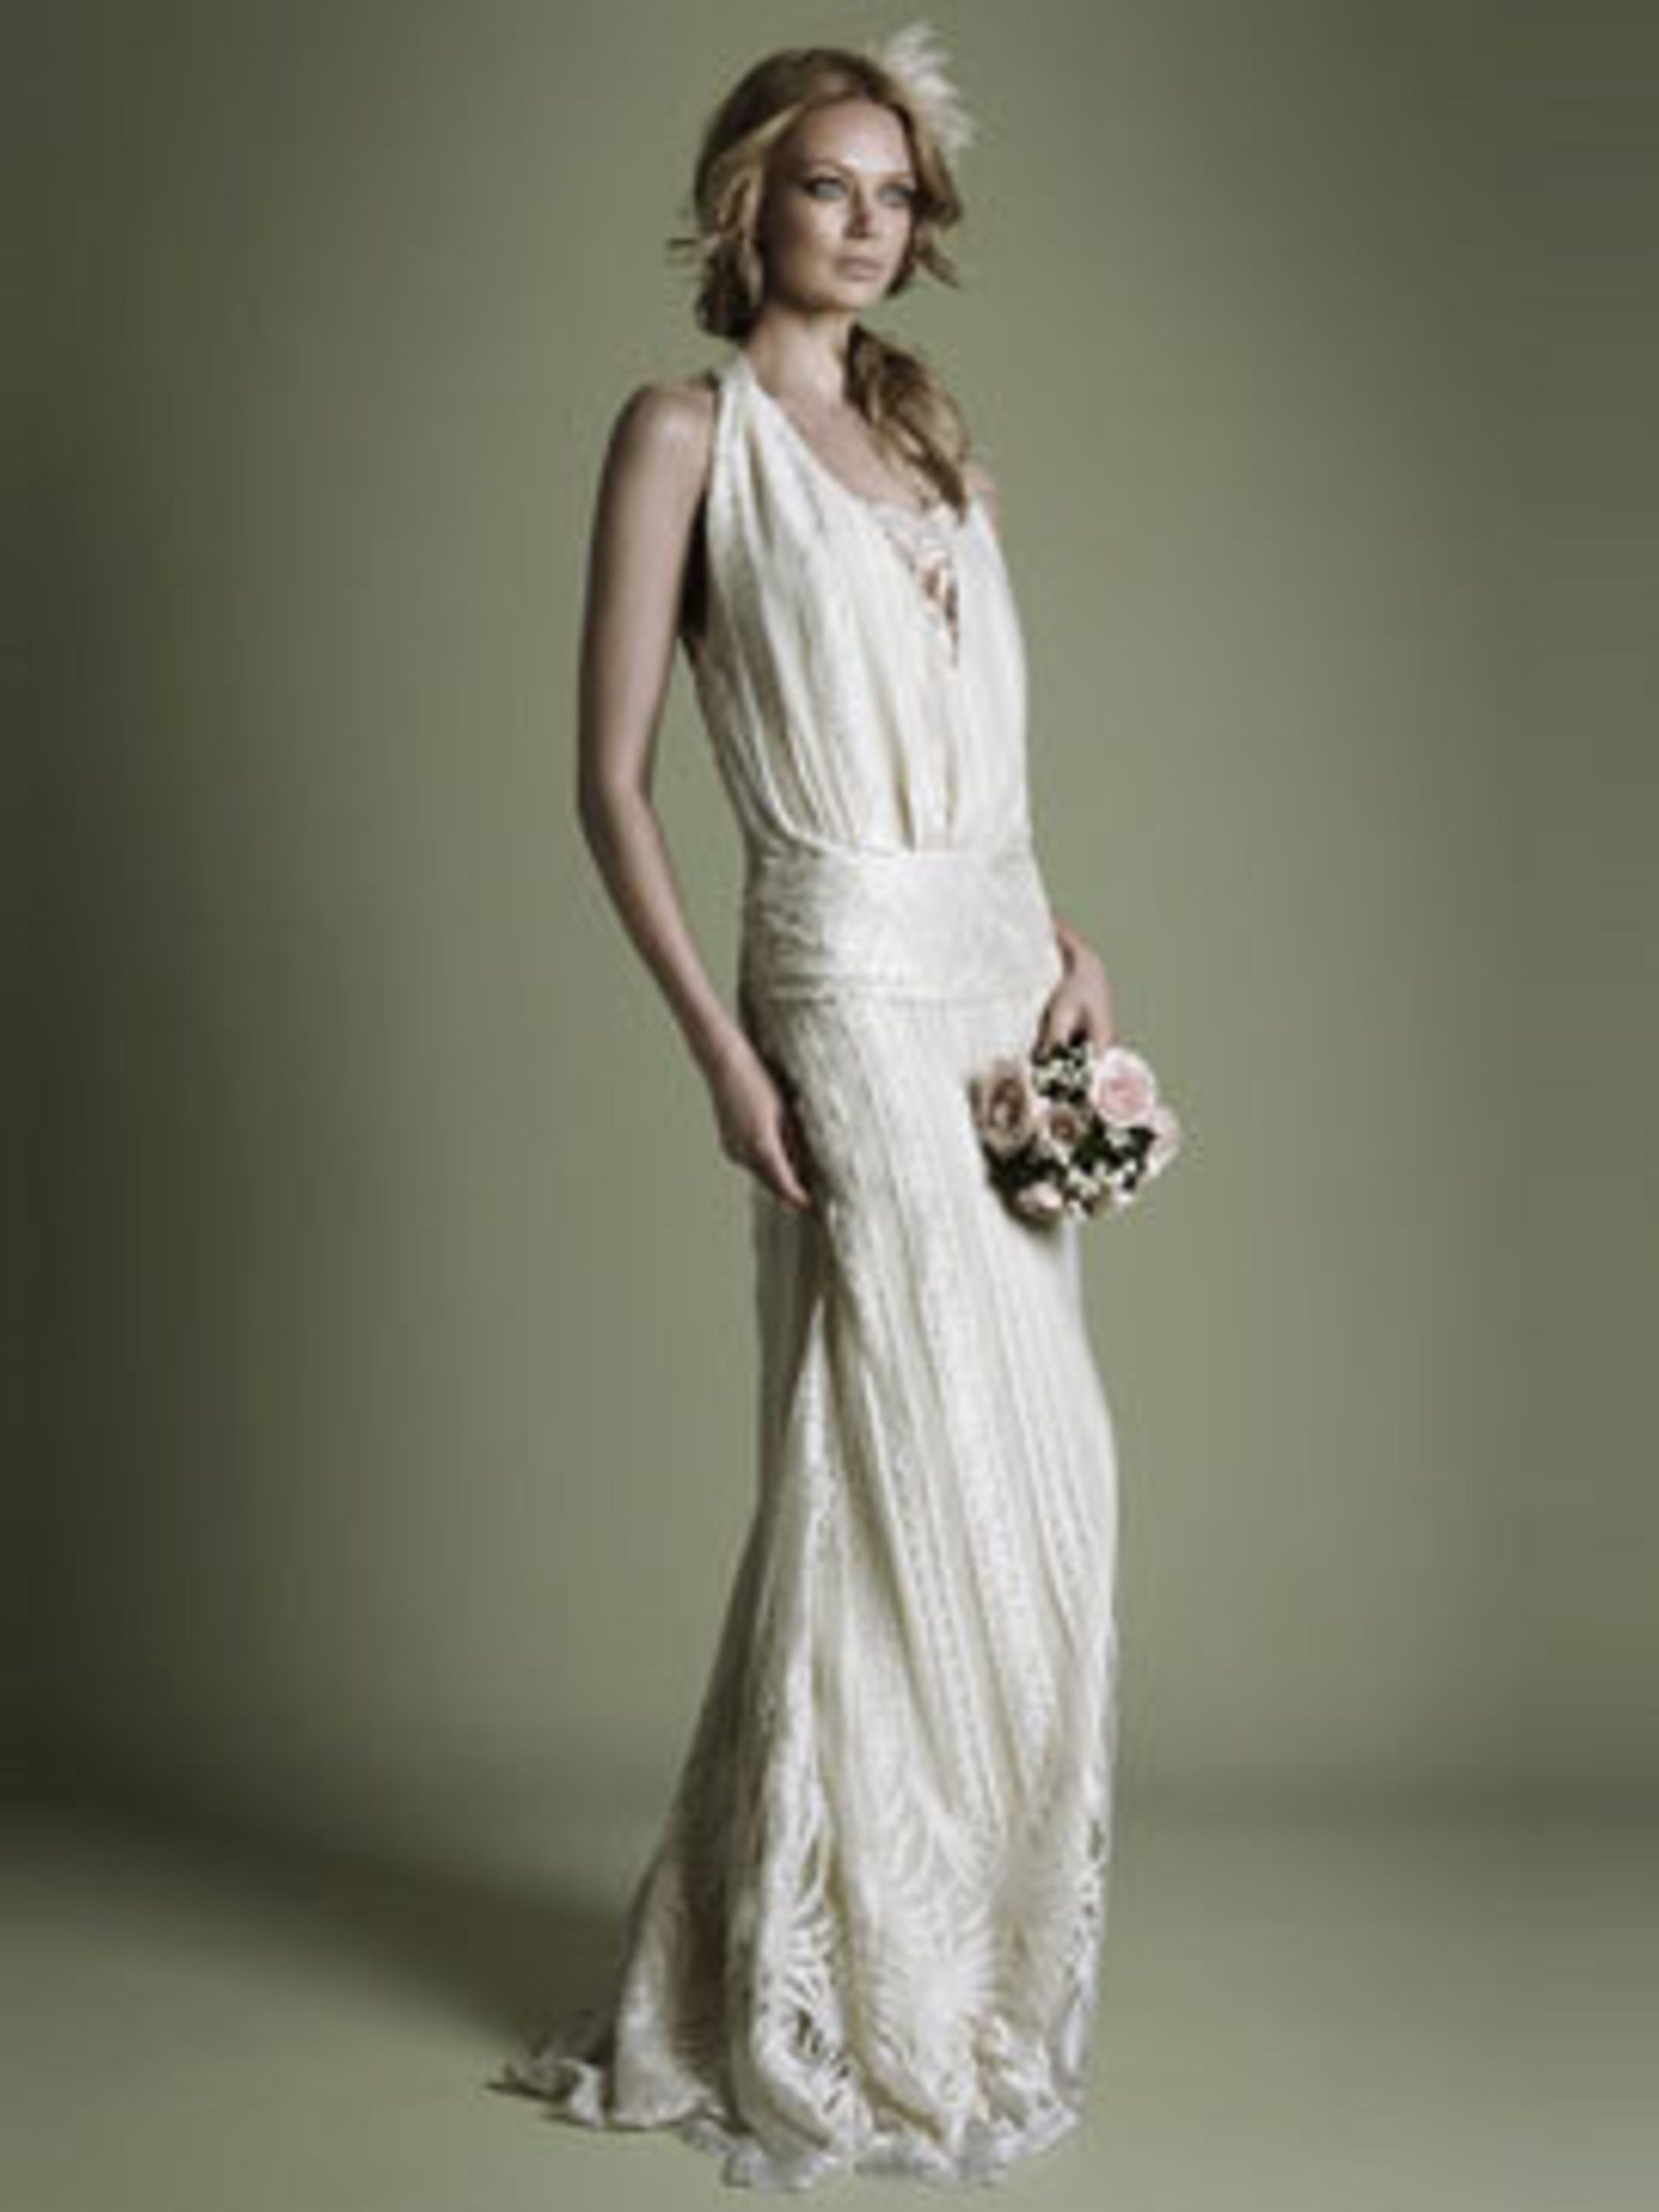 Sample Sale Alert: The Vintage Wedding Dress Company